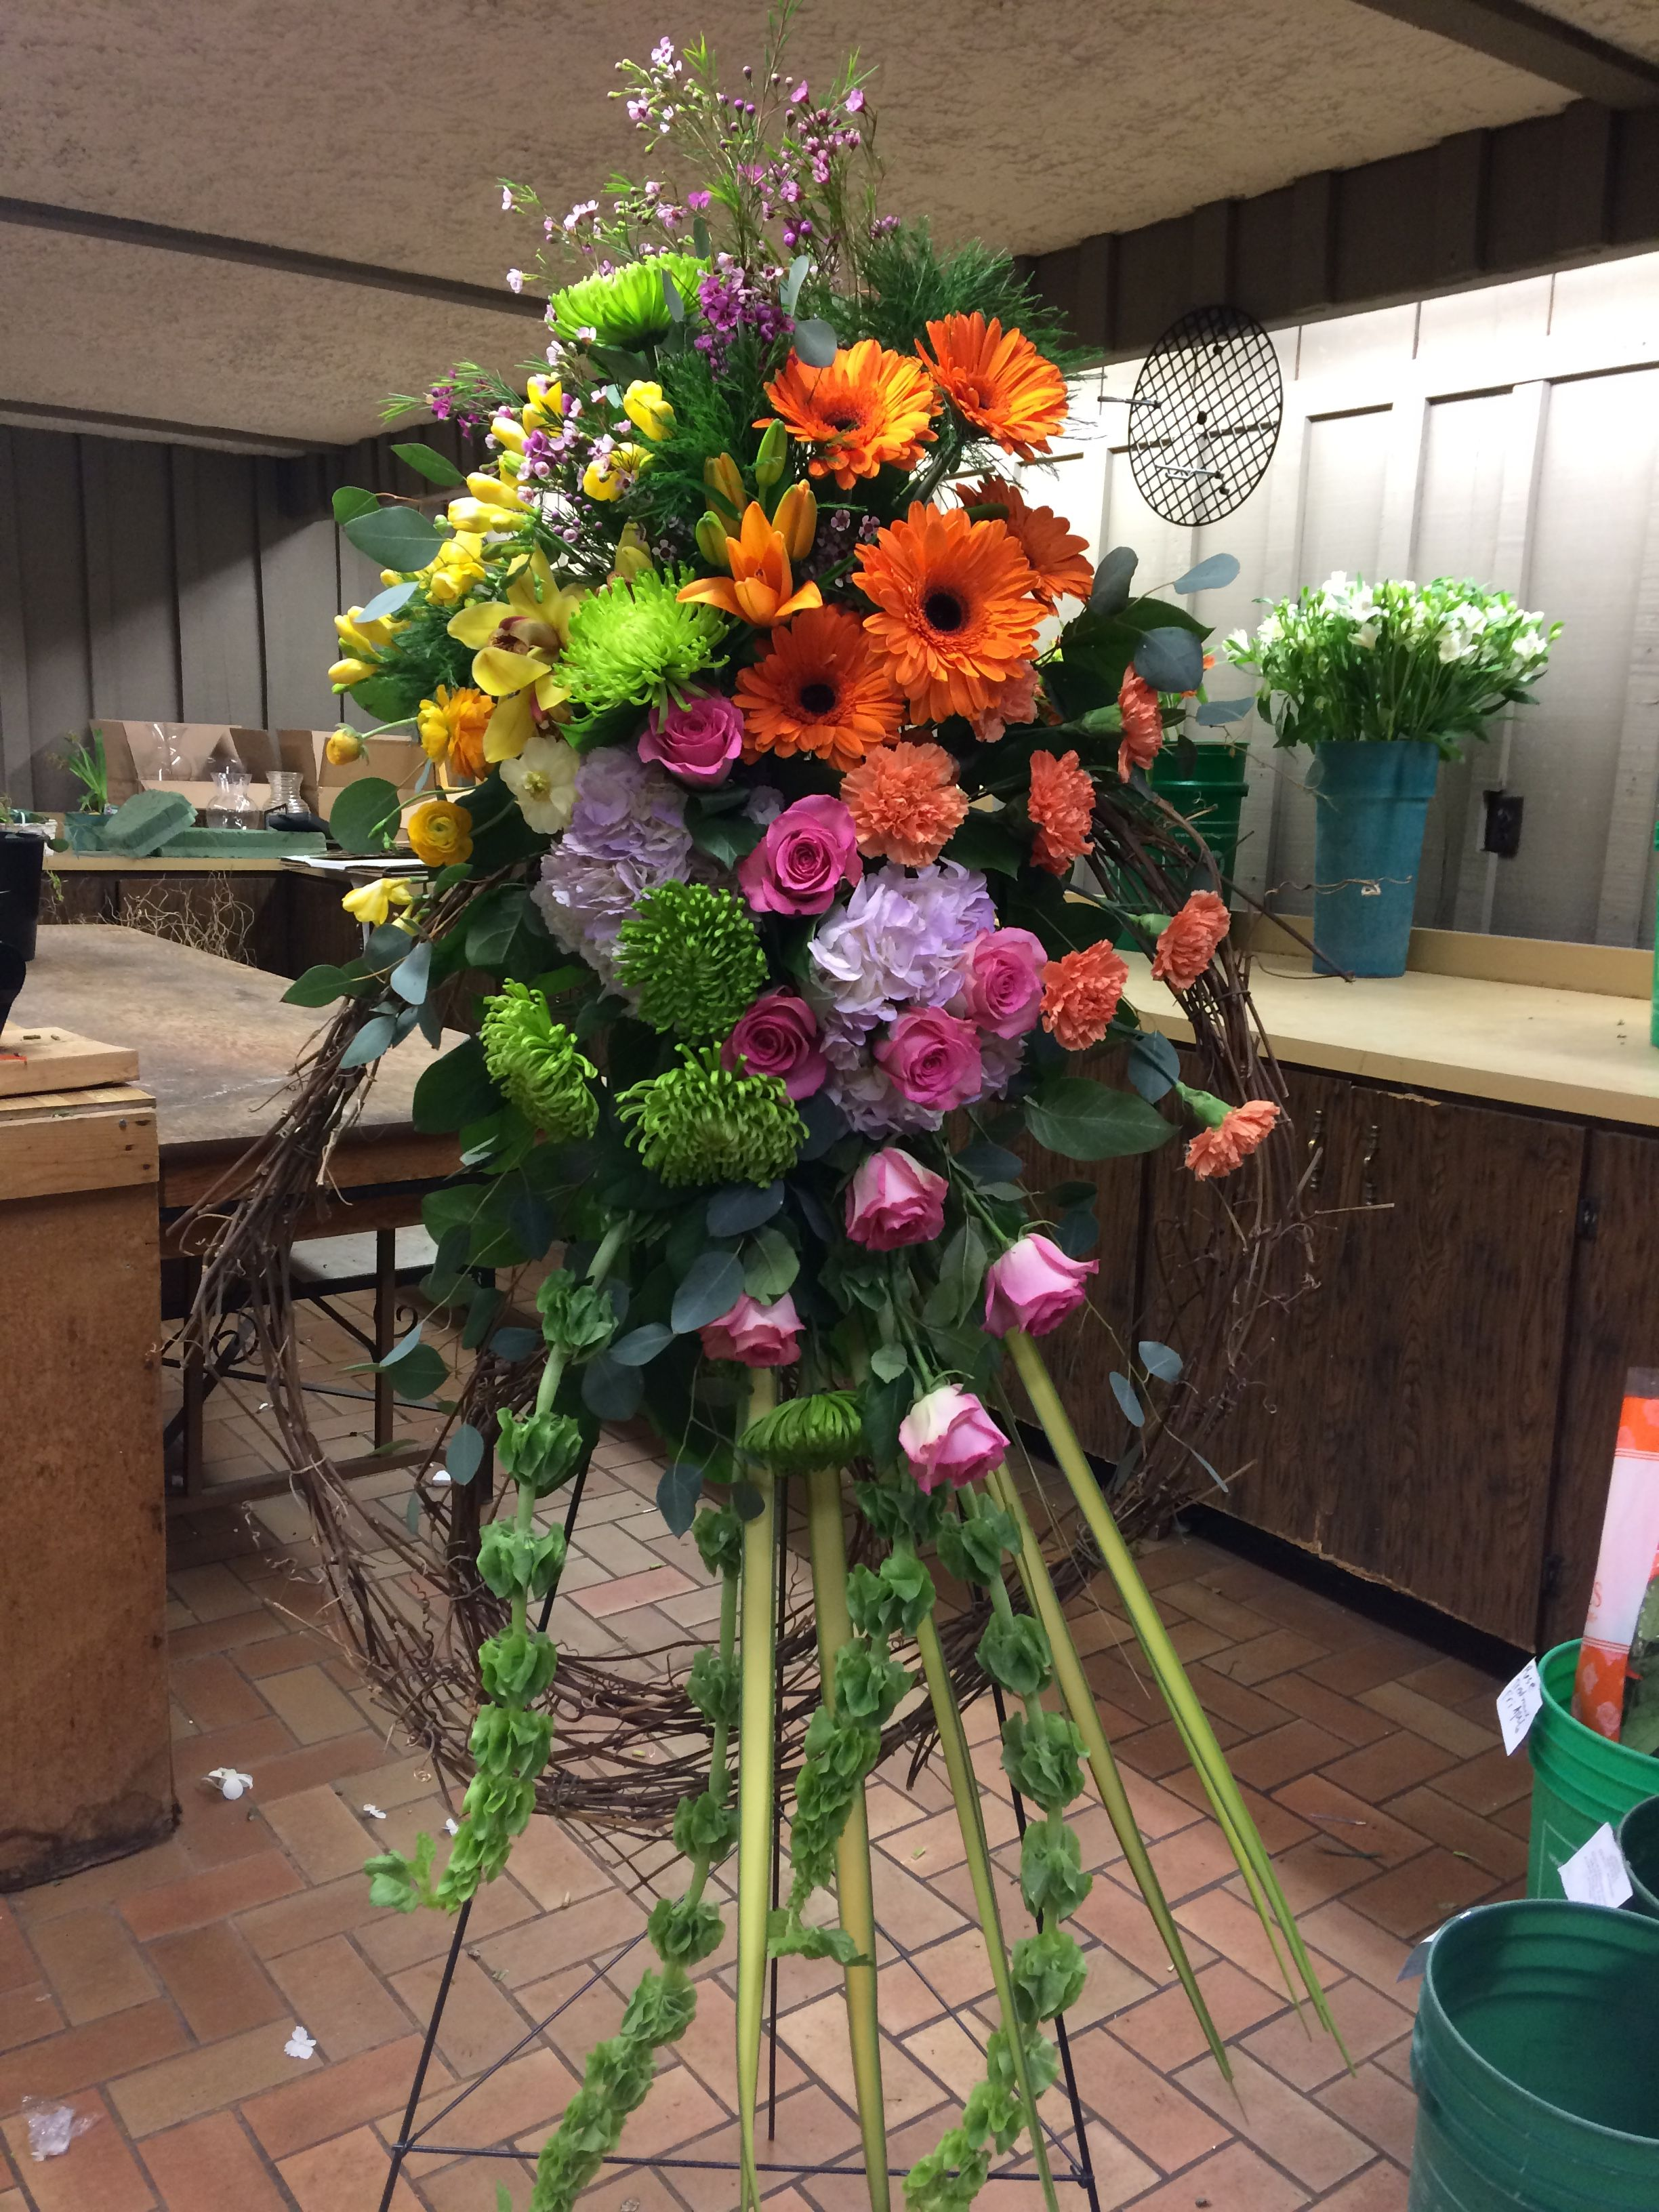 Pin by patrice outlaw on floral arrangements pinterest funeral pin by patrice outlaw on floral arrangements pinterest funeral funeral flowers and sympathy flowers izmirmasajfo